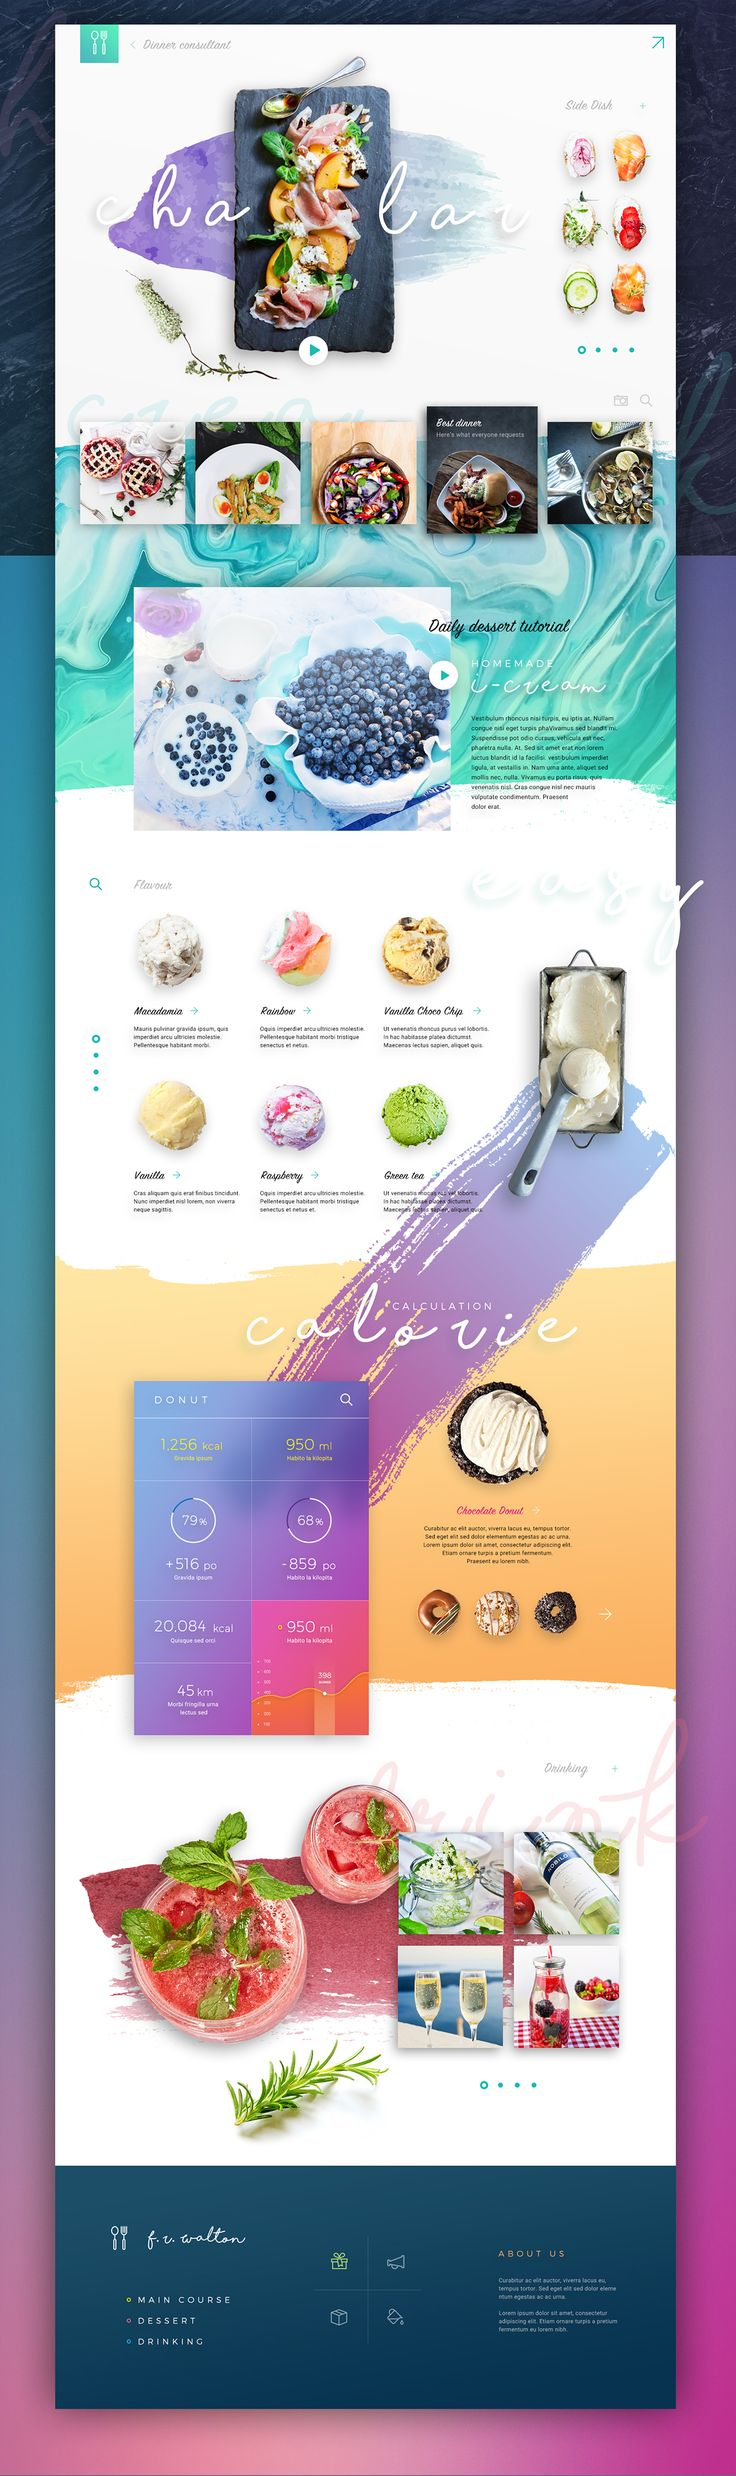 Chalar on Behance - So colorful but it wokrs so well with the content and colorful food.